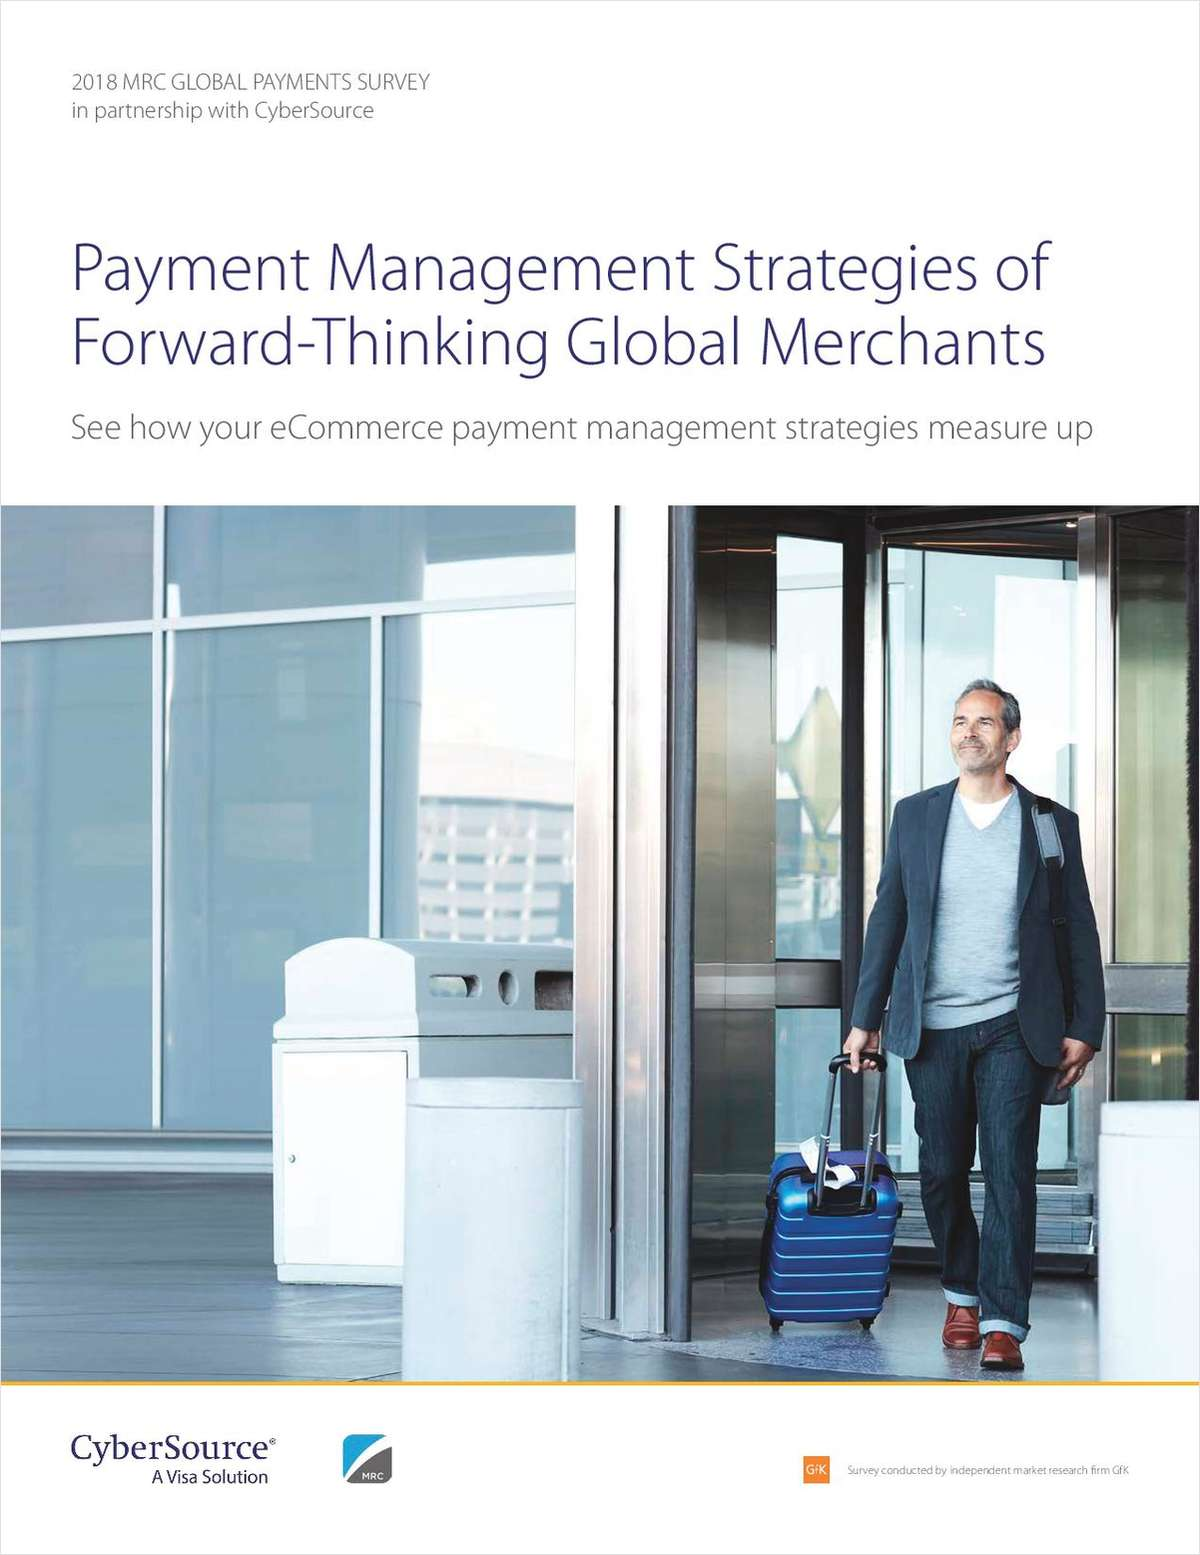 The Payment Management Strategies of Forward-Thinking Merchants